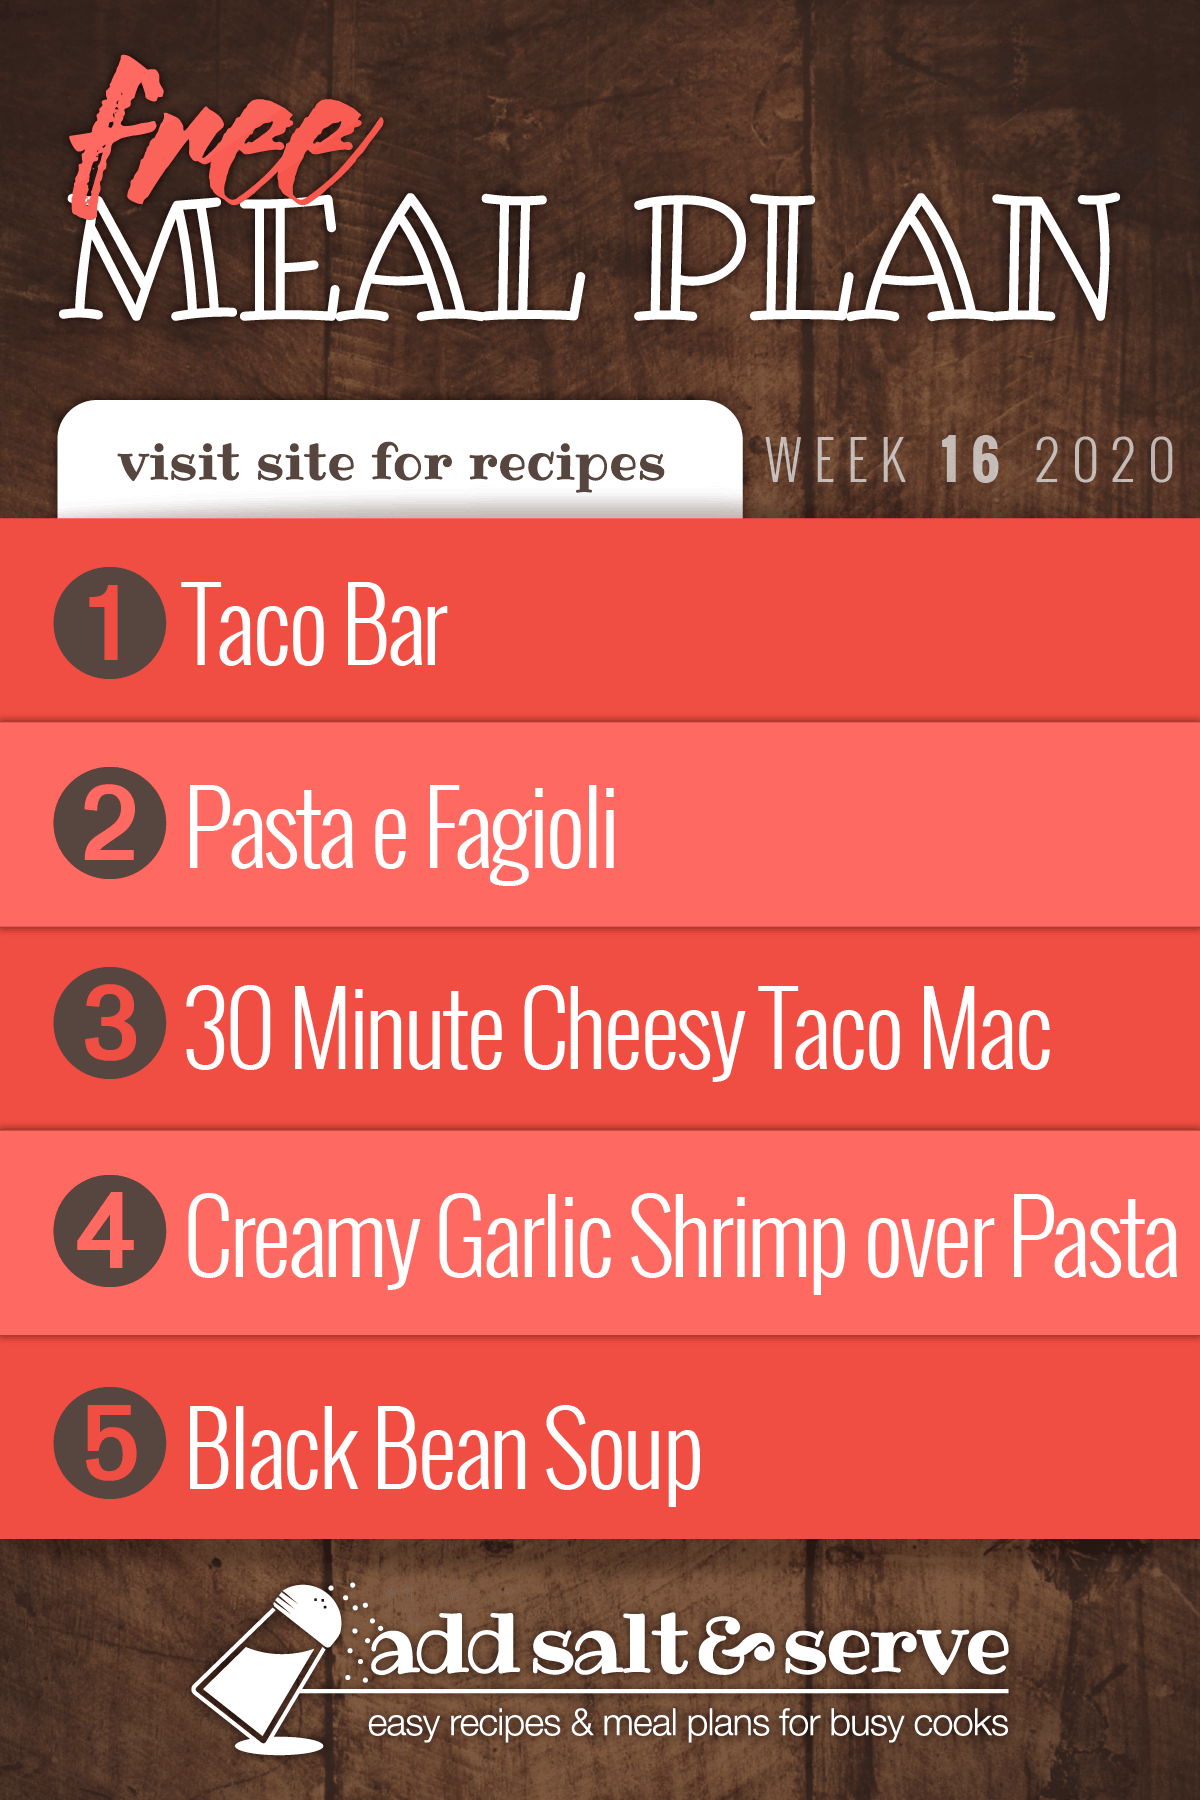 Free Meal Plan for Week 16 2020: Taco Bar, Pasta e Fagioli, 30 Minutes Cheesy Taco Macaroni, Creamy Garlic Shrimp over Angel Hair Pasta, Black Bean Soup - Visit site for recipes - Add Salt & Serve